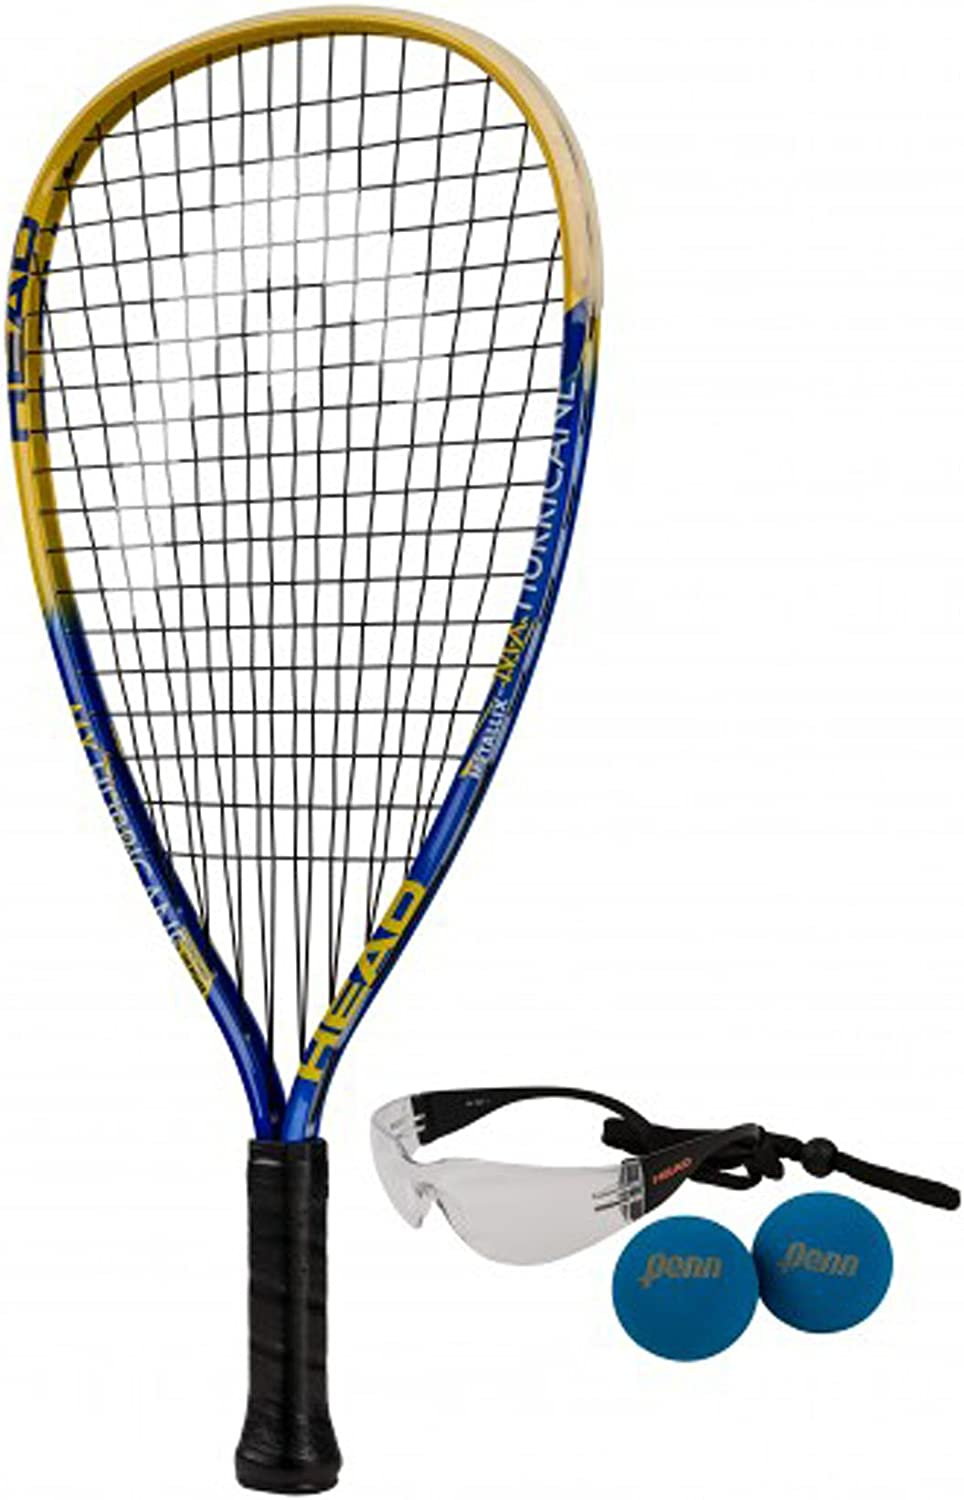 Starter to Advanced Options HEAD Racketball Rackets